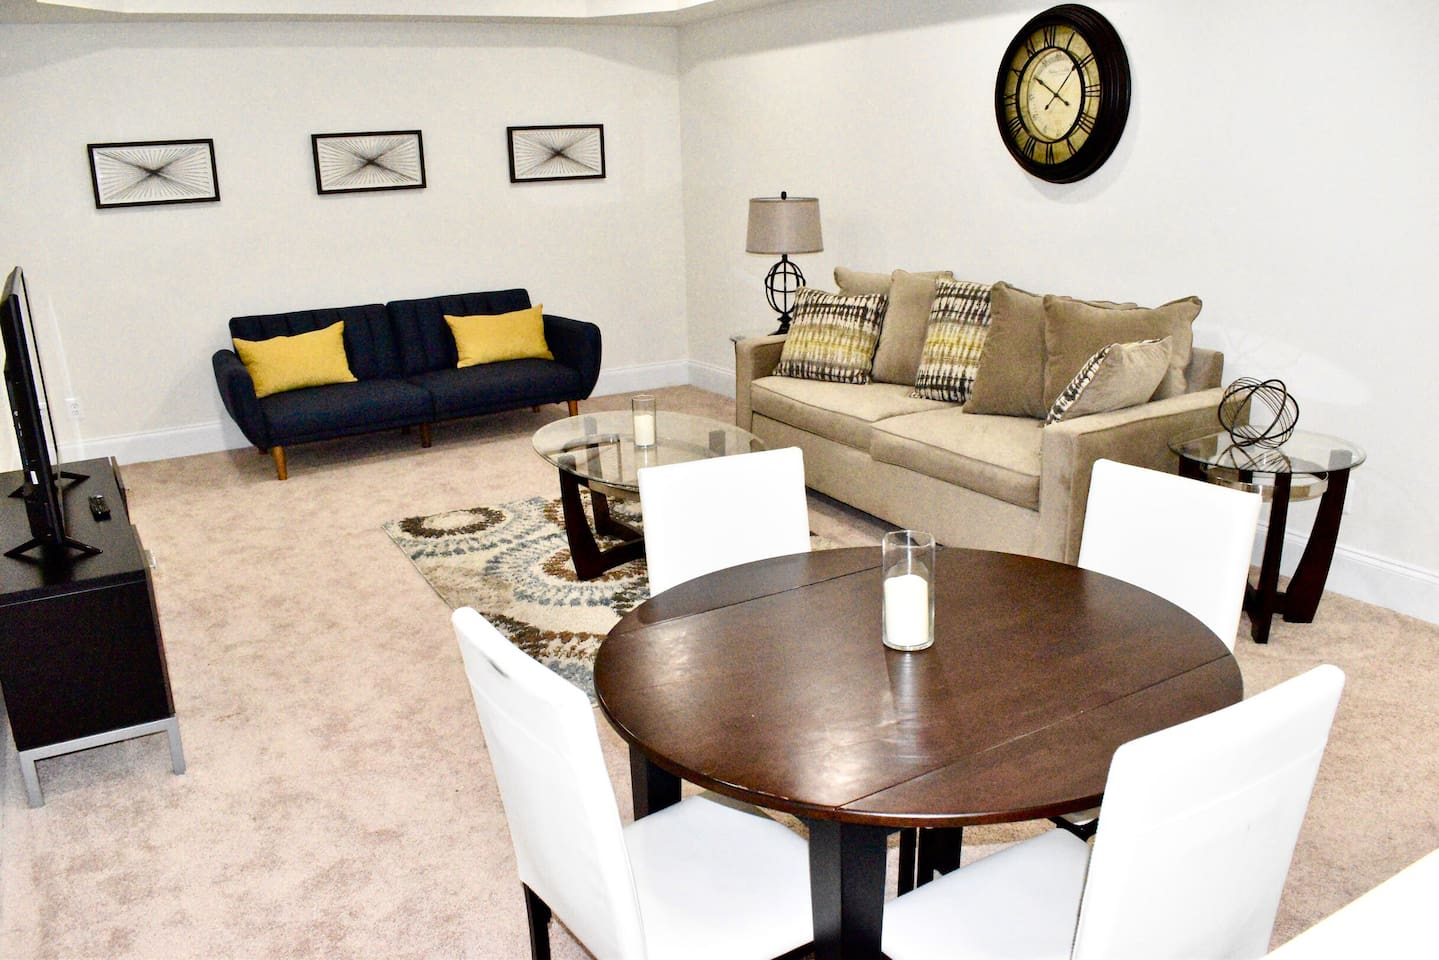 Living room area with futon